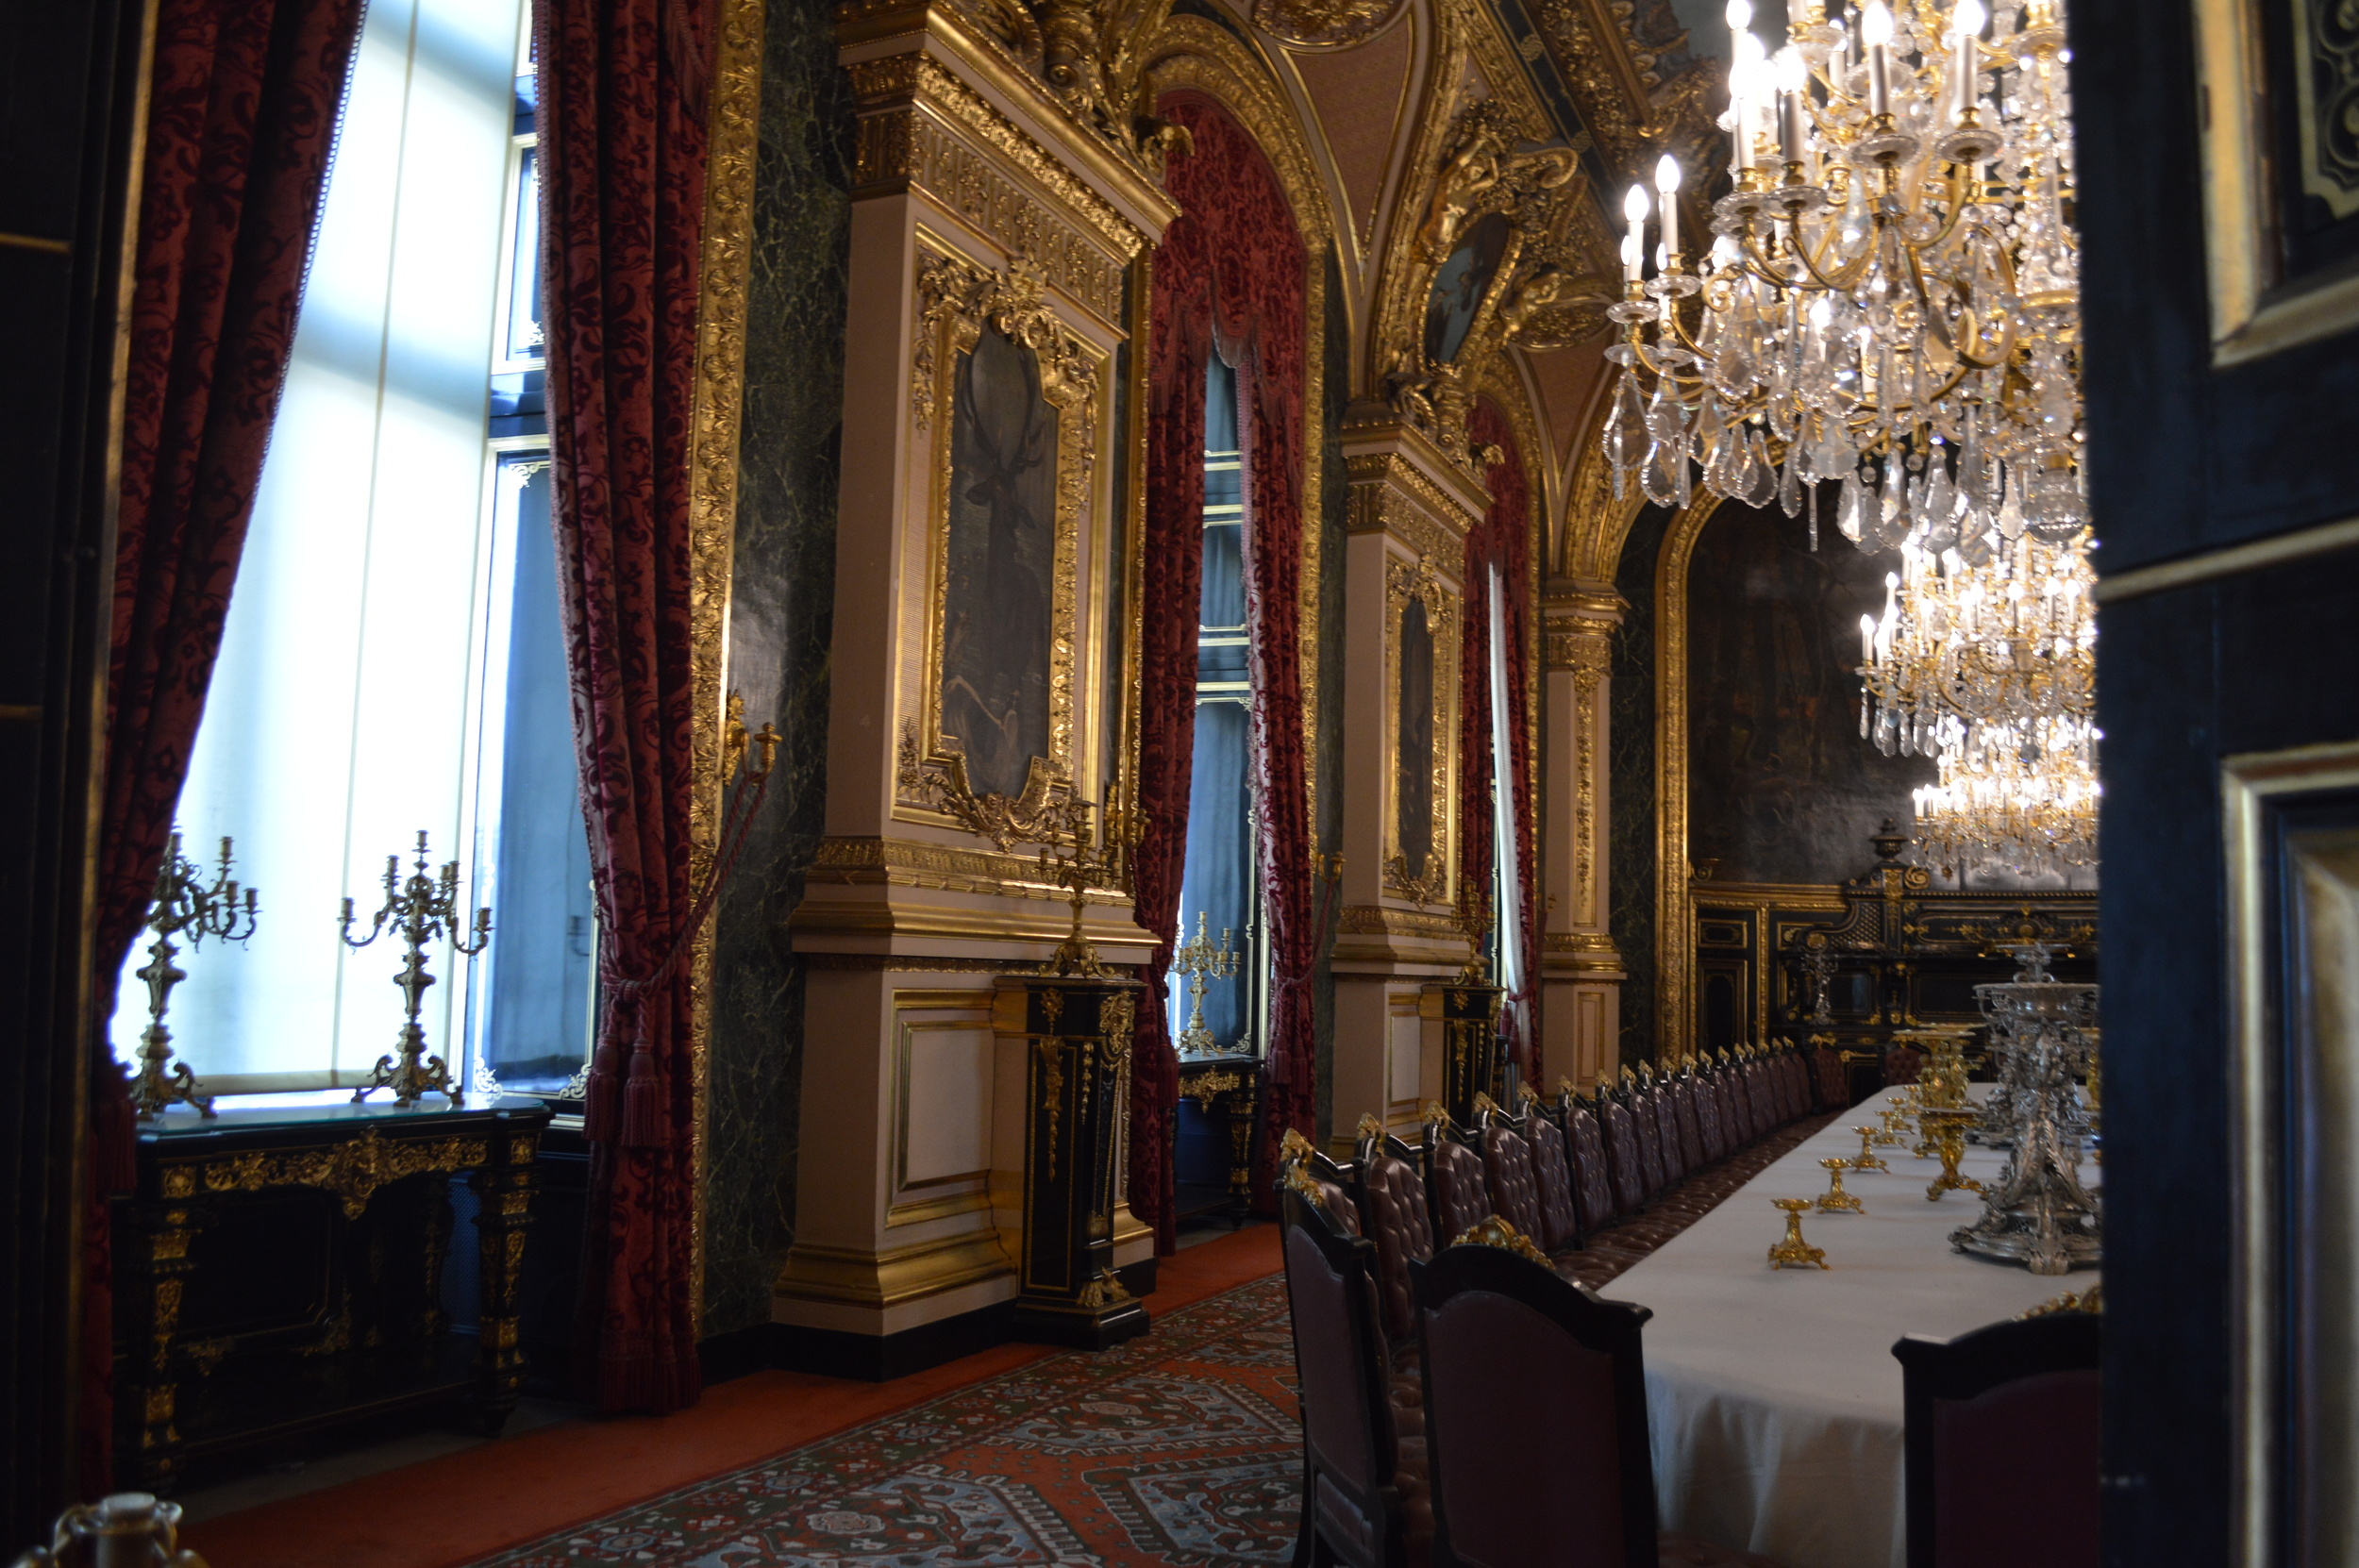 Napoleon III's room The Louvre